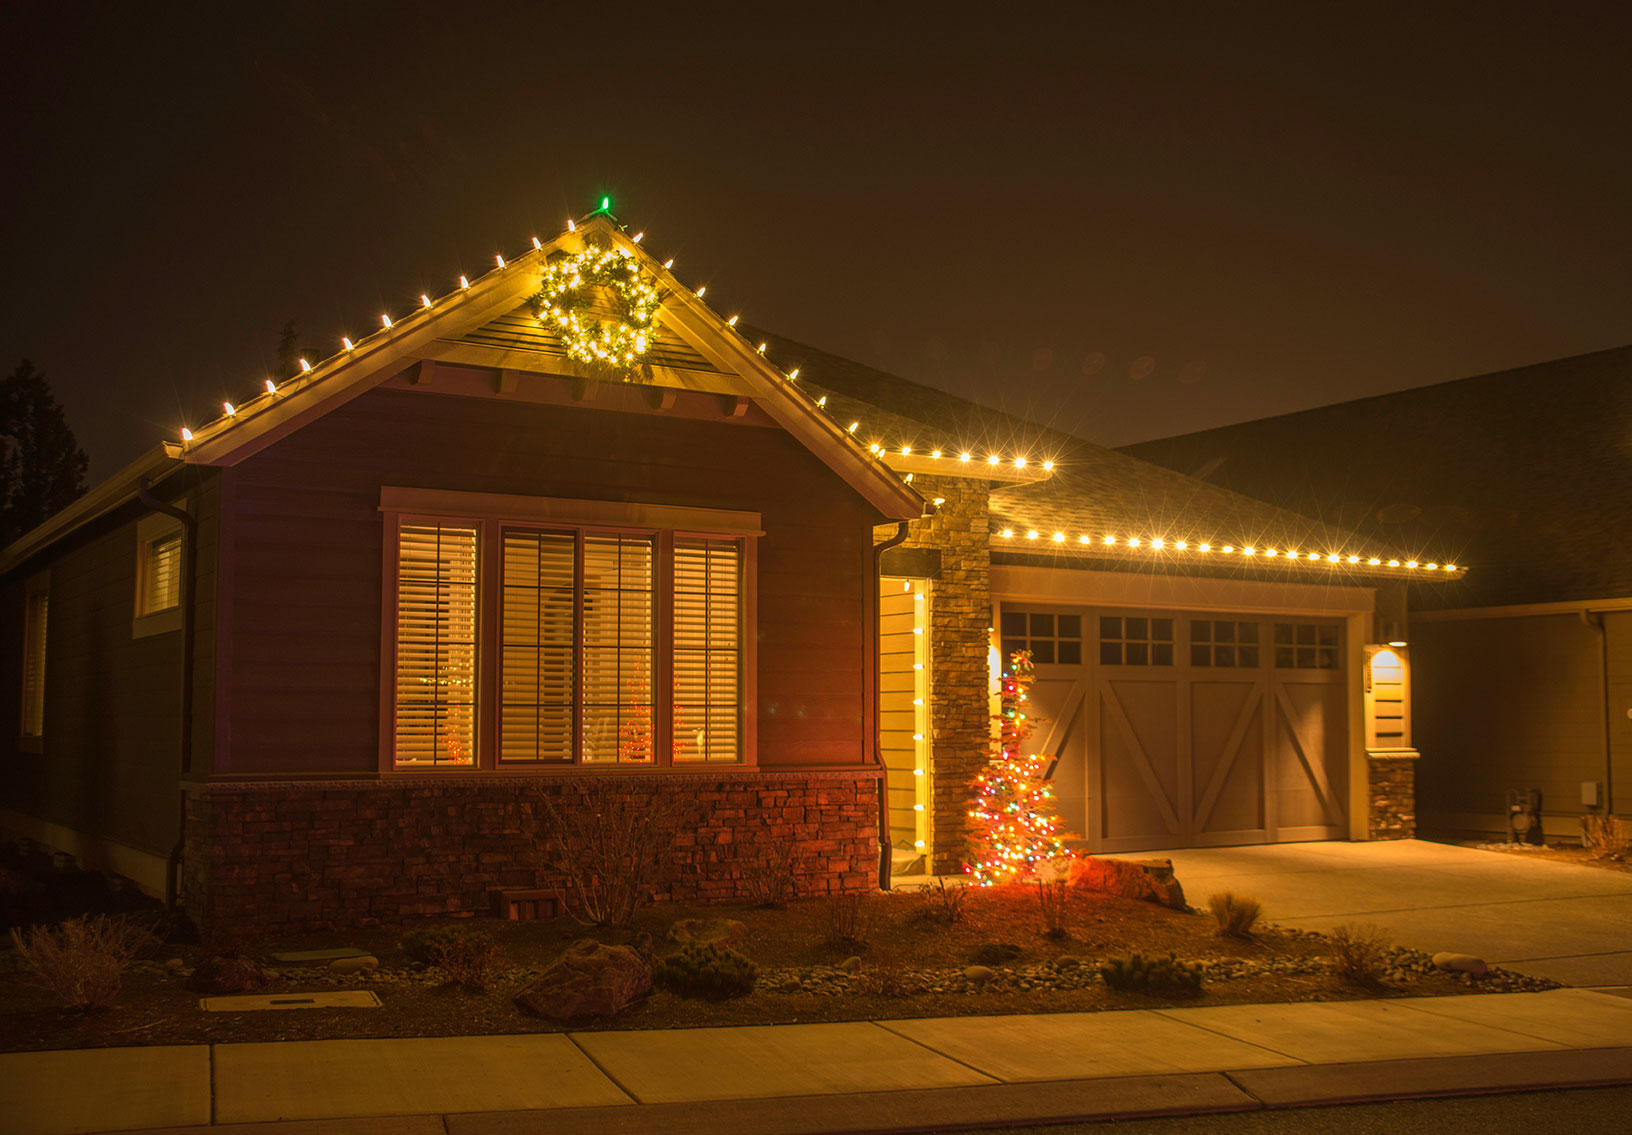 Things To Do In Nj For Christmas.Custom Made Christmas Light Installation Princeton Nj